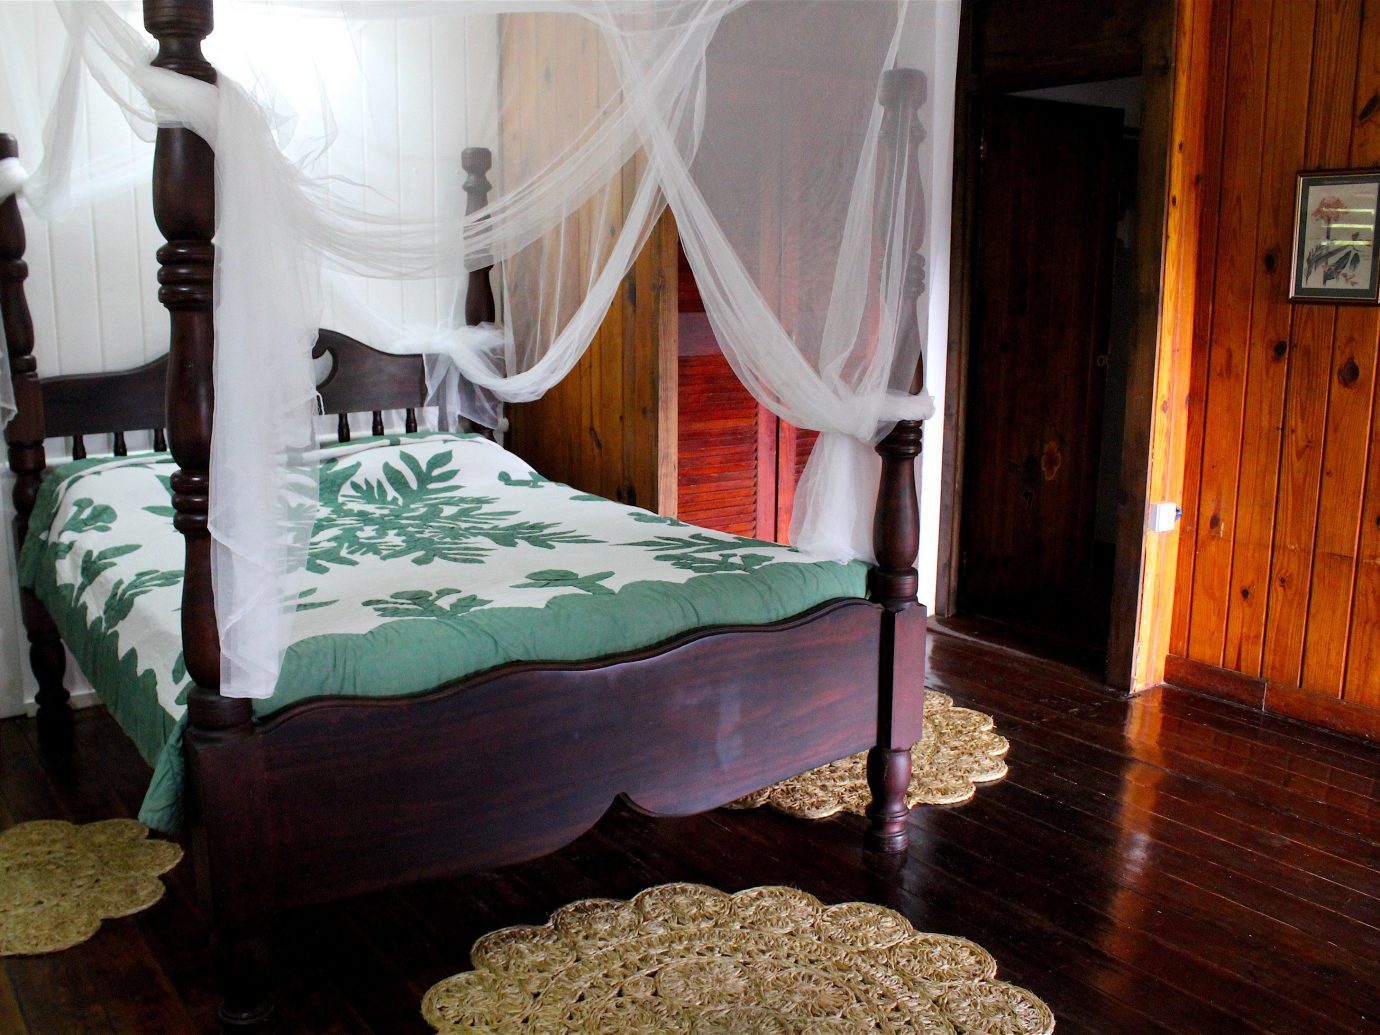 Trip Ideas mosquito net indoor floor room bed house furniture interior design Bedroom cottage